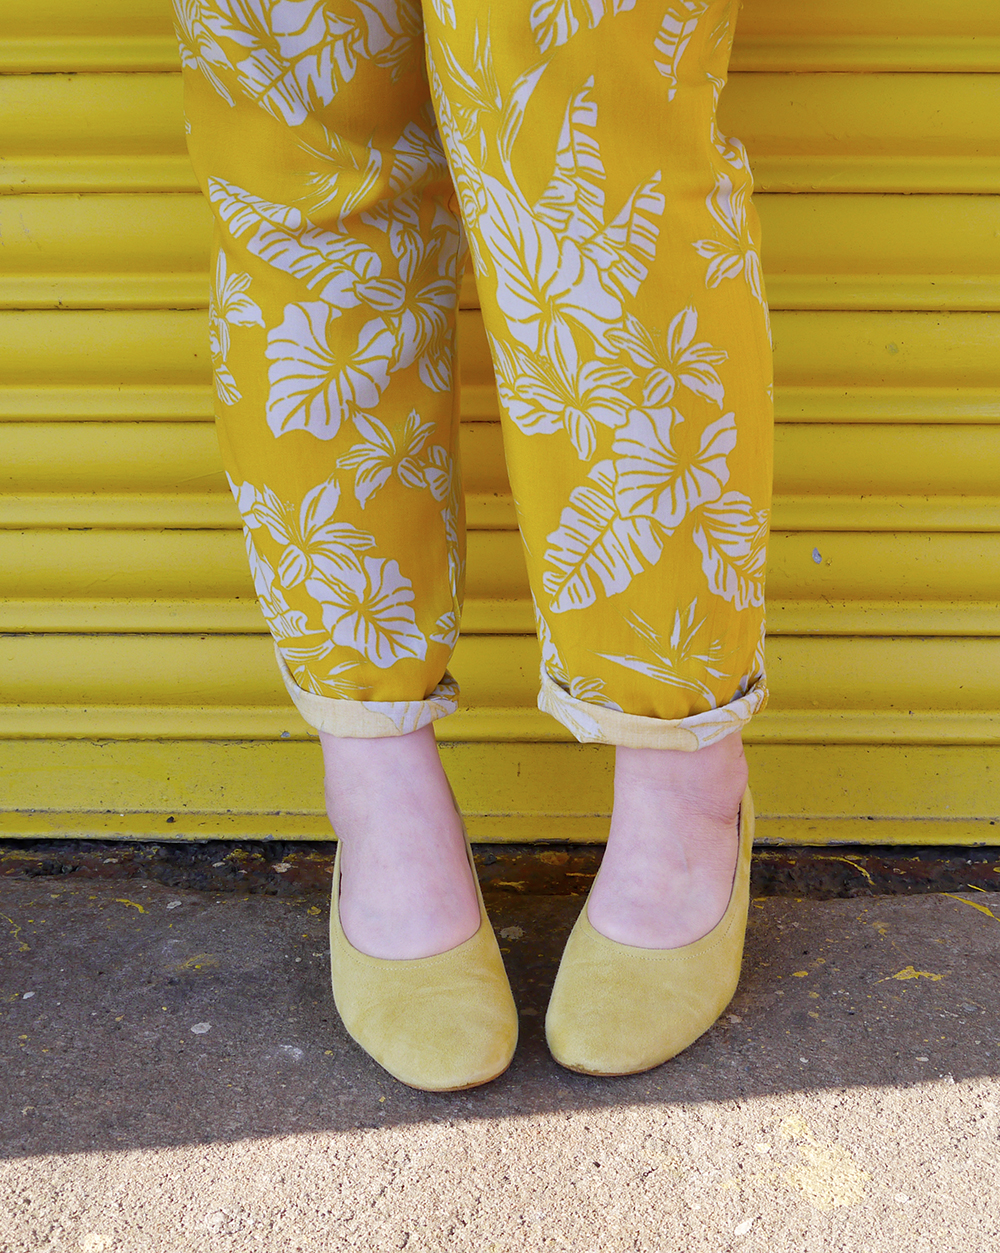 Helen from Wardrobe Conversations wears yellow Office shoes and tropical charity shop trousers